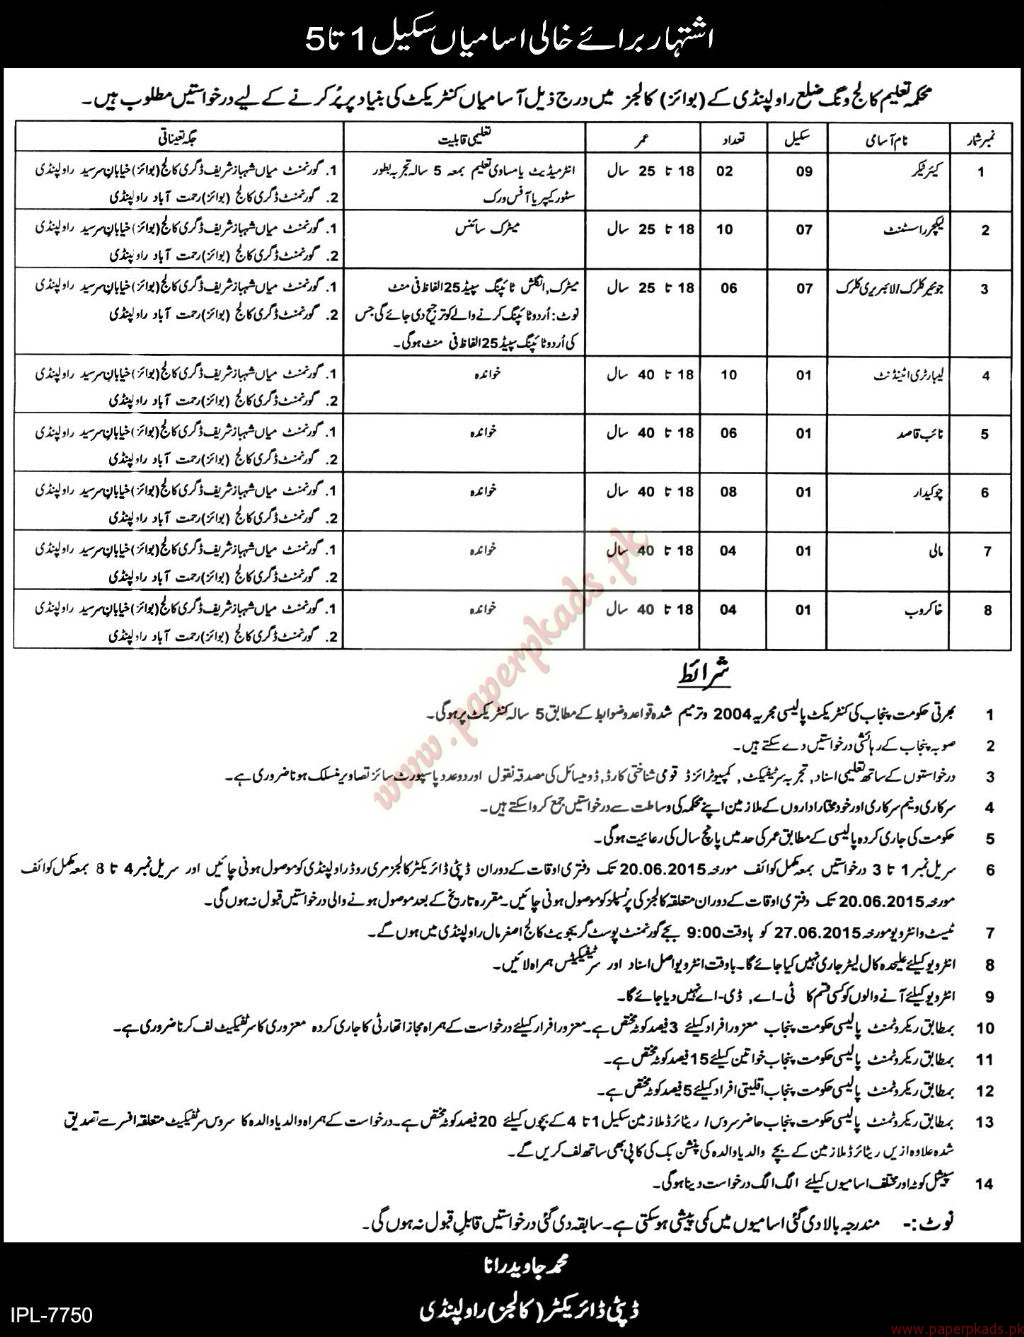 Caretaker, Lecturer Assistant, Junior Clerks, Library Attendant and Other Jobs - Express Jobs ads 09 June 2015